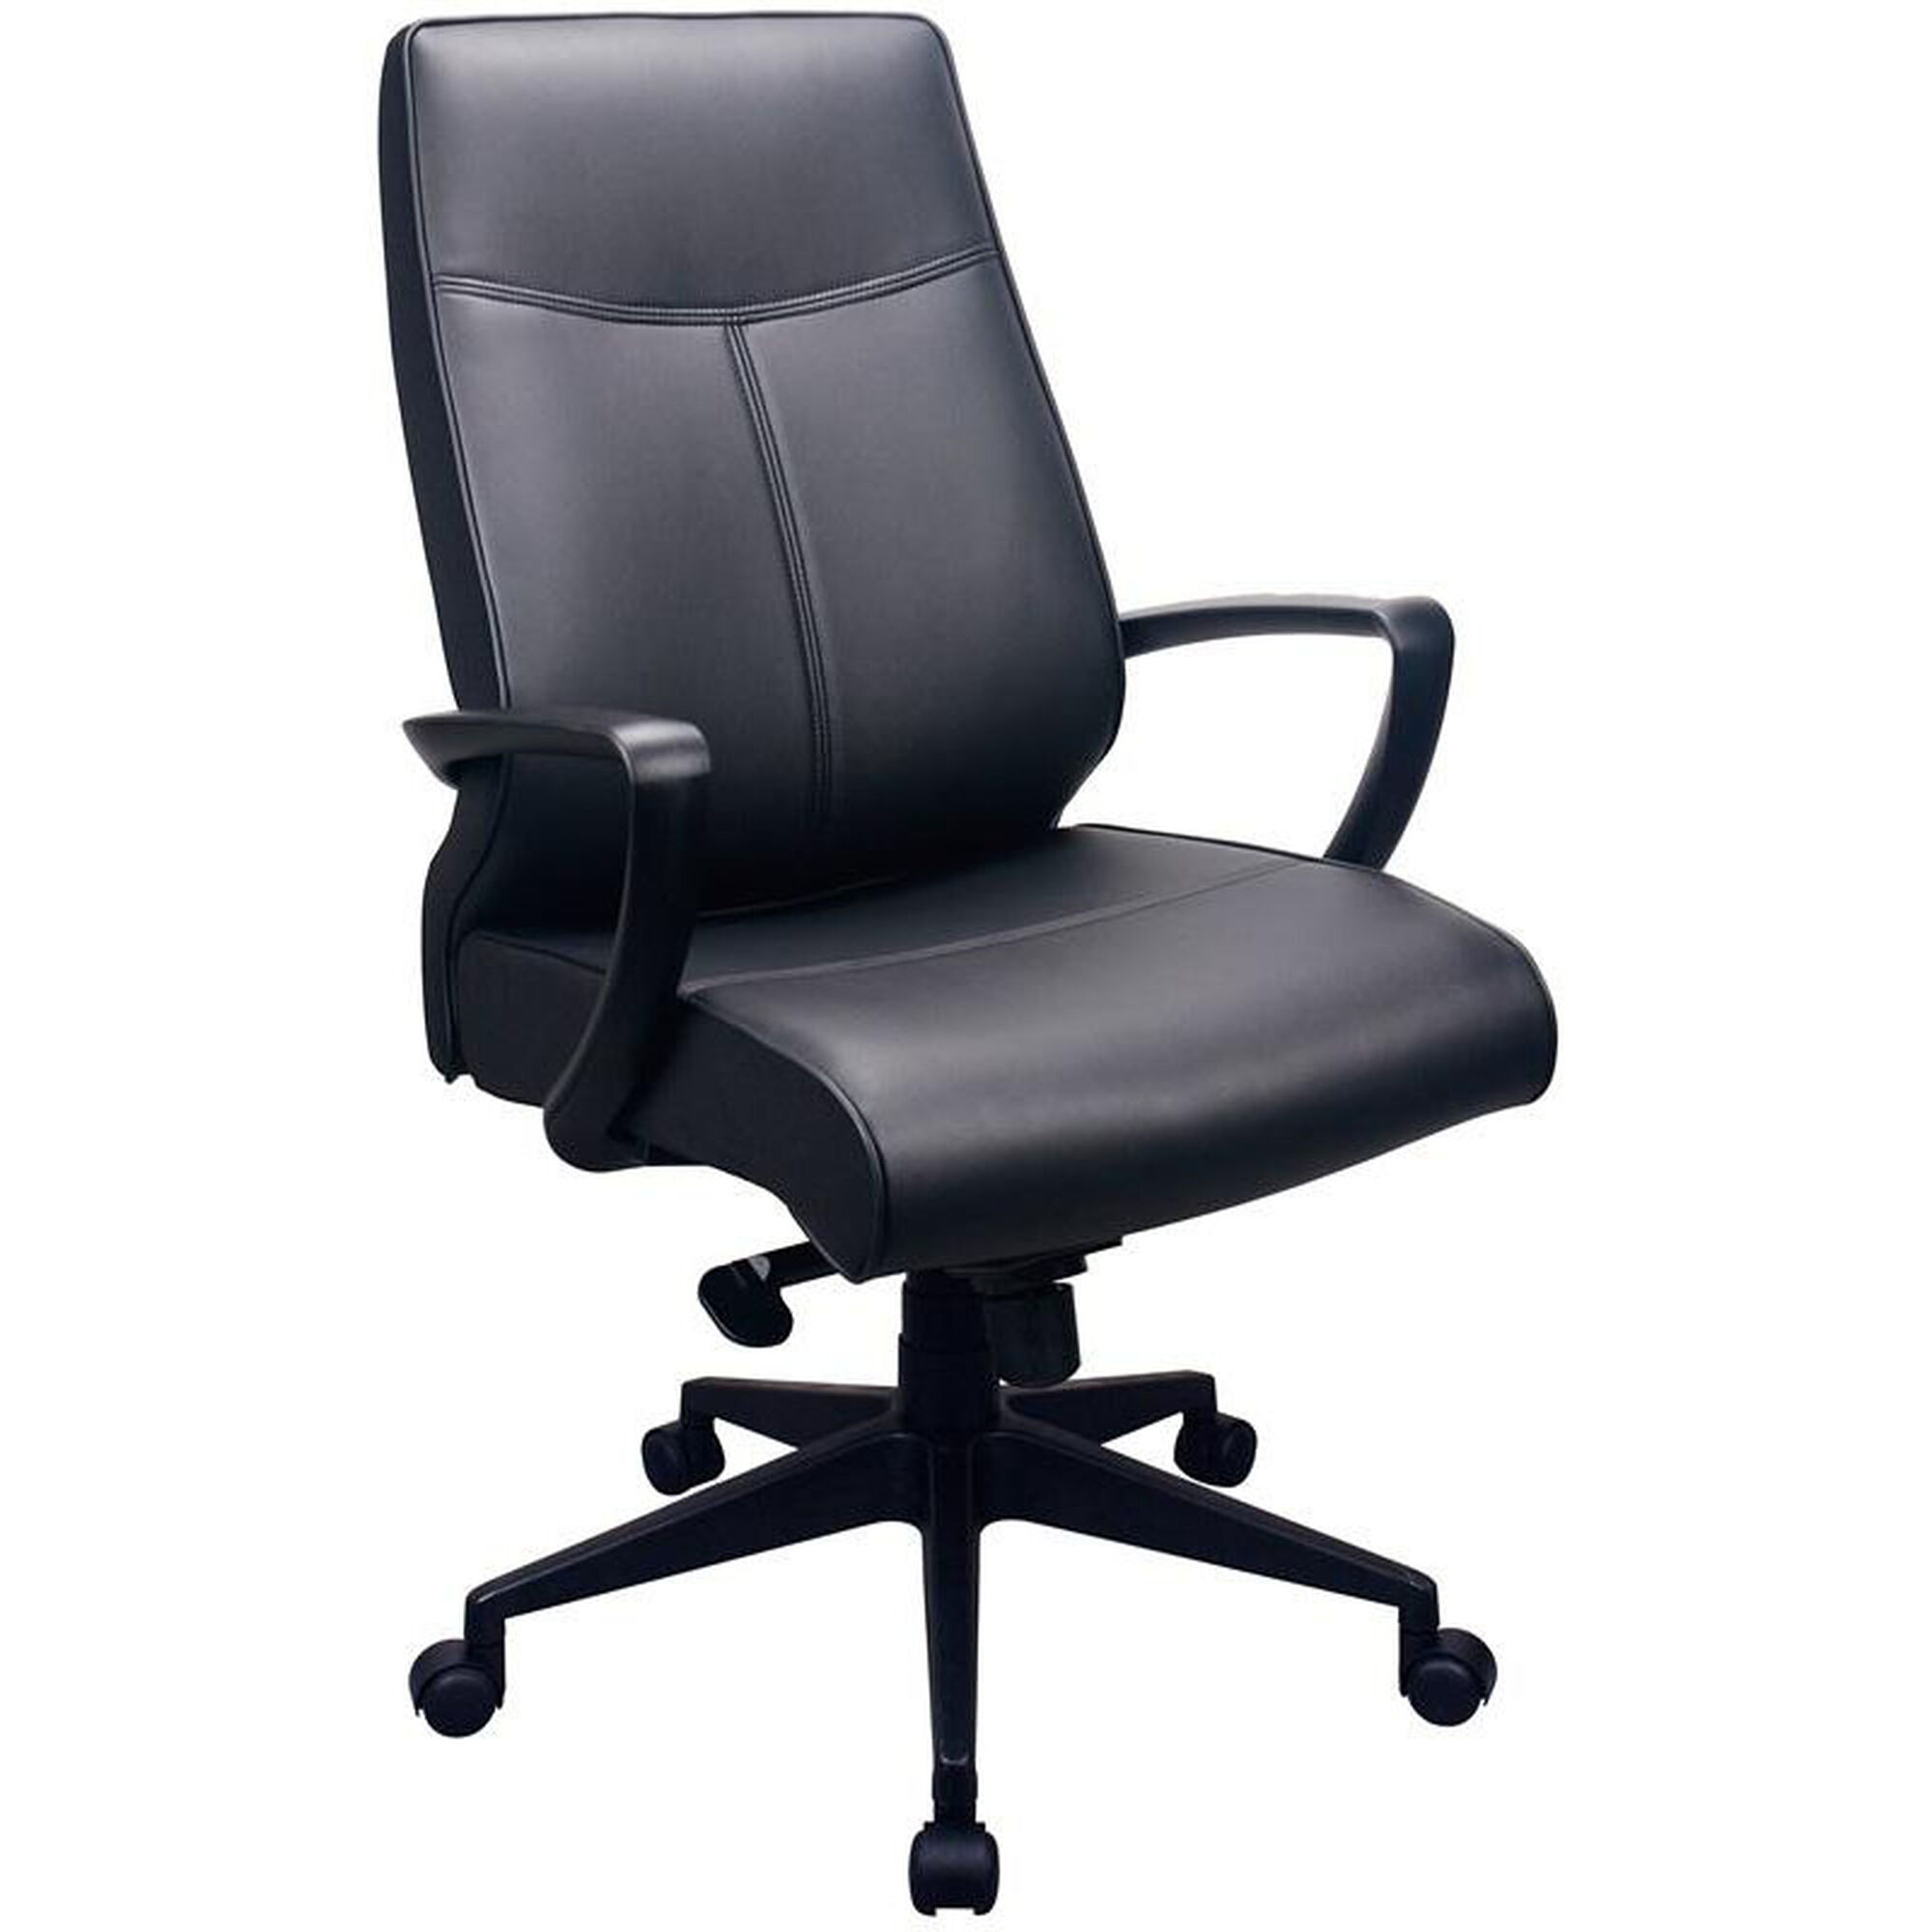 Raynor Group panies TP300 EURO at Bizchair